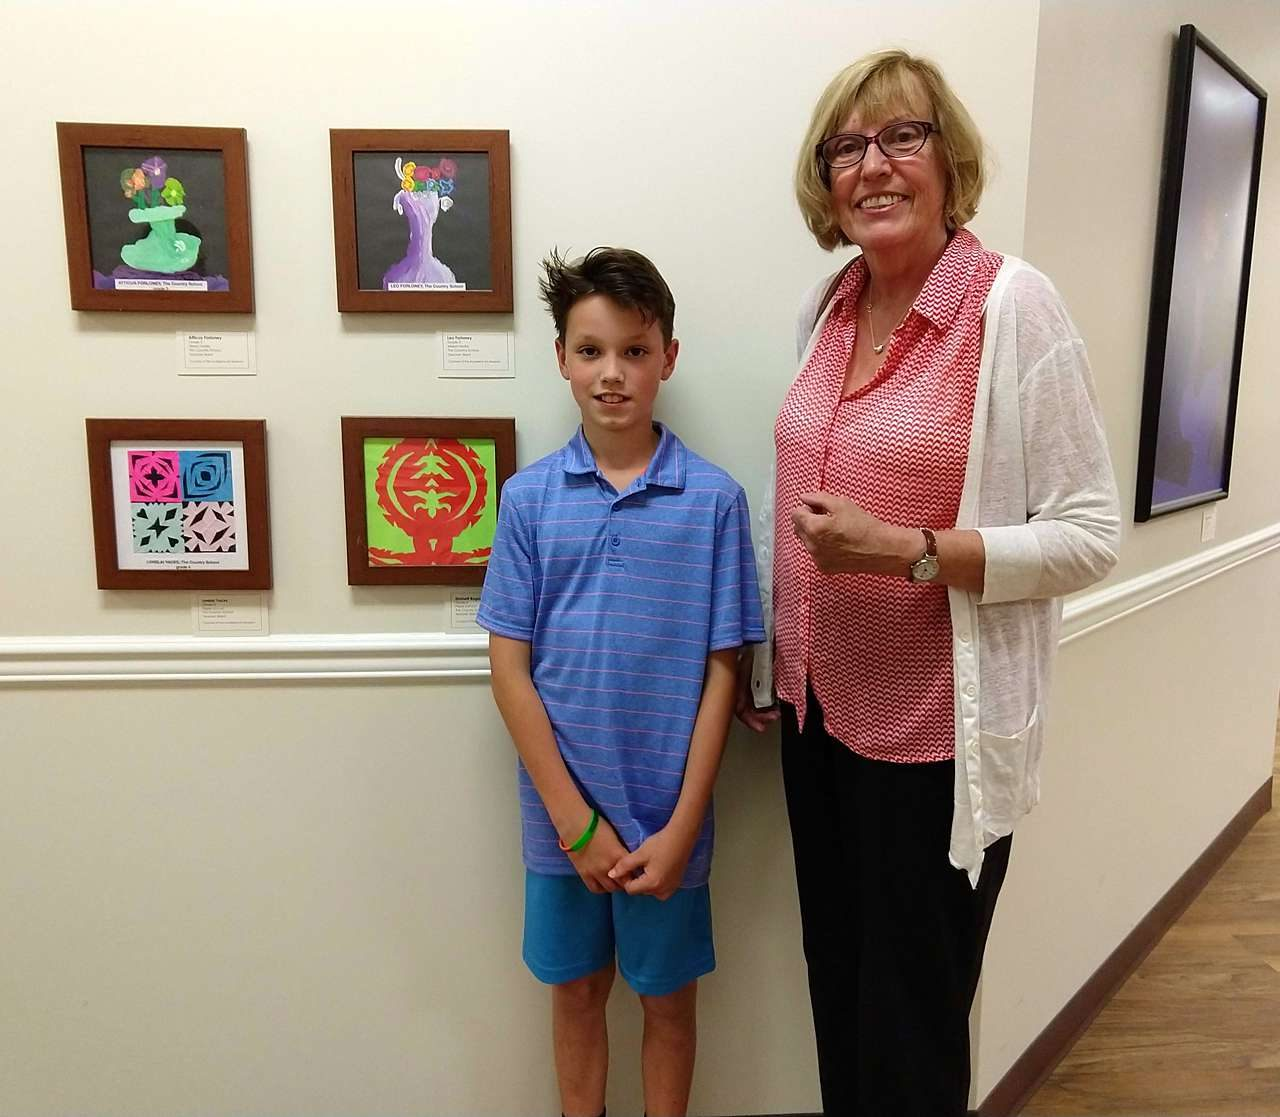 Student posing with art at Maryland Hospital